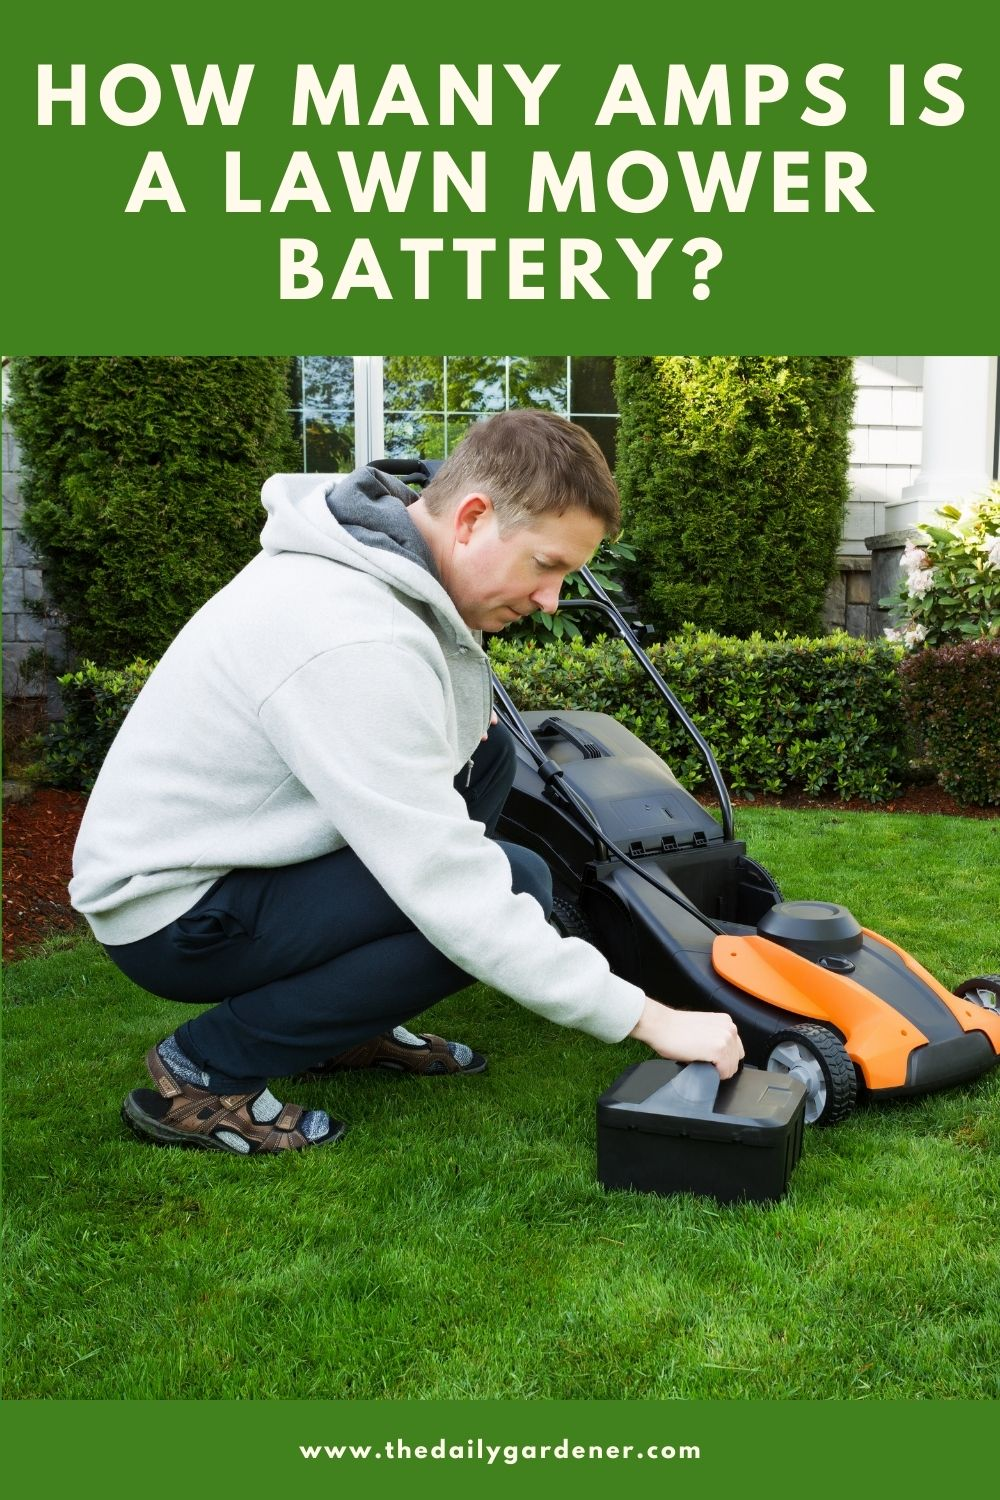 How Many Amps is a Lawn Mower Battery 2